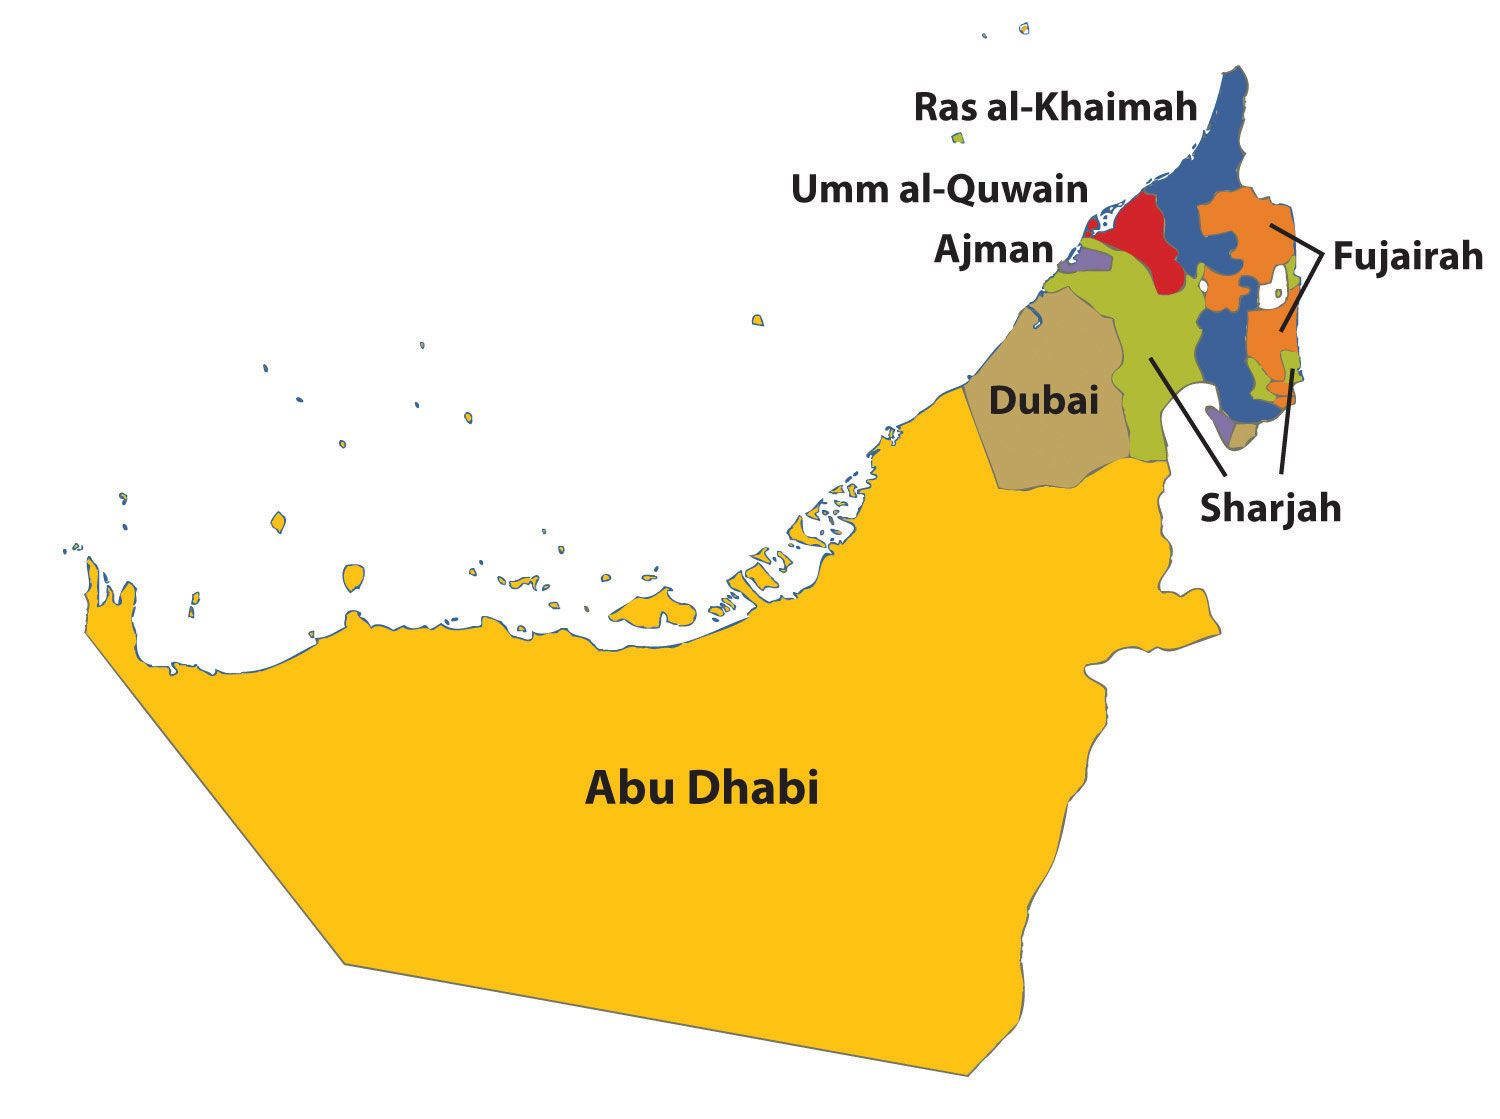 Outline Map Of Uae With Emirates Google Search General - Uae map